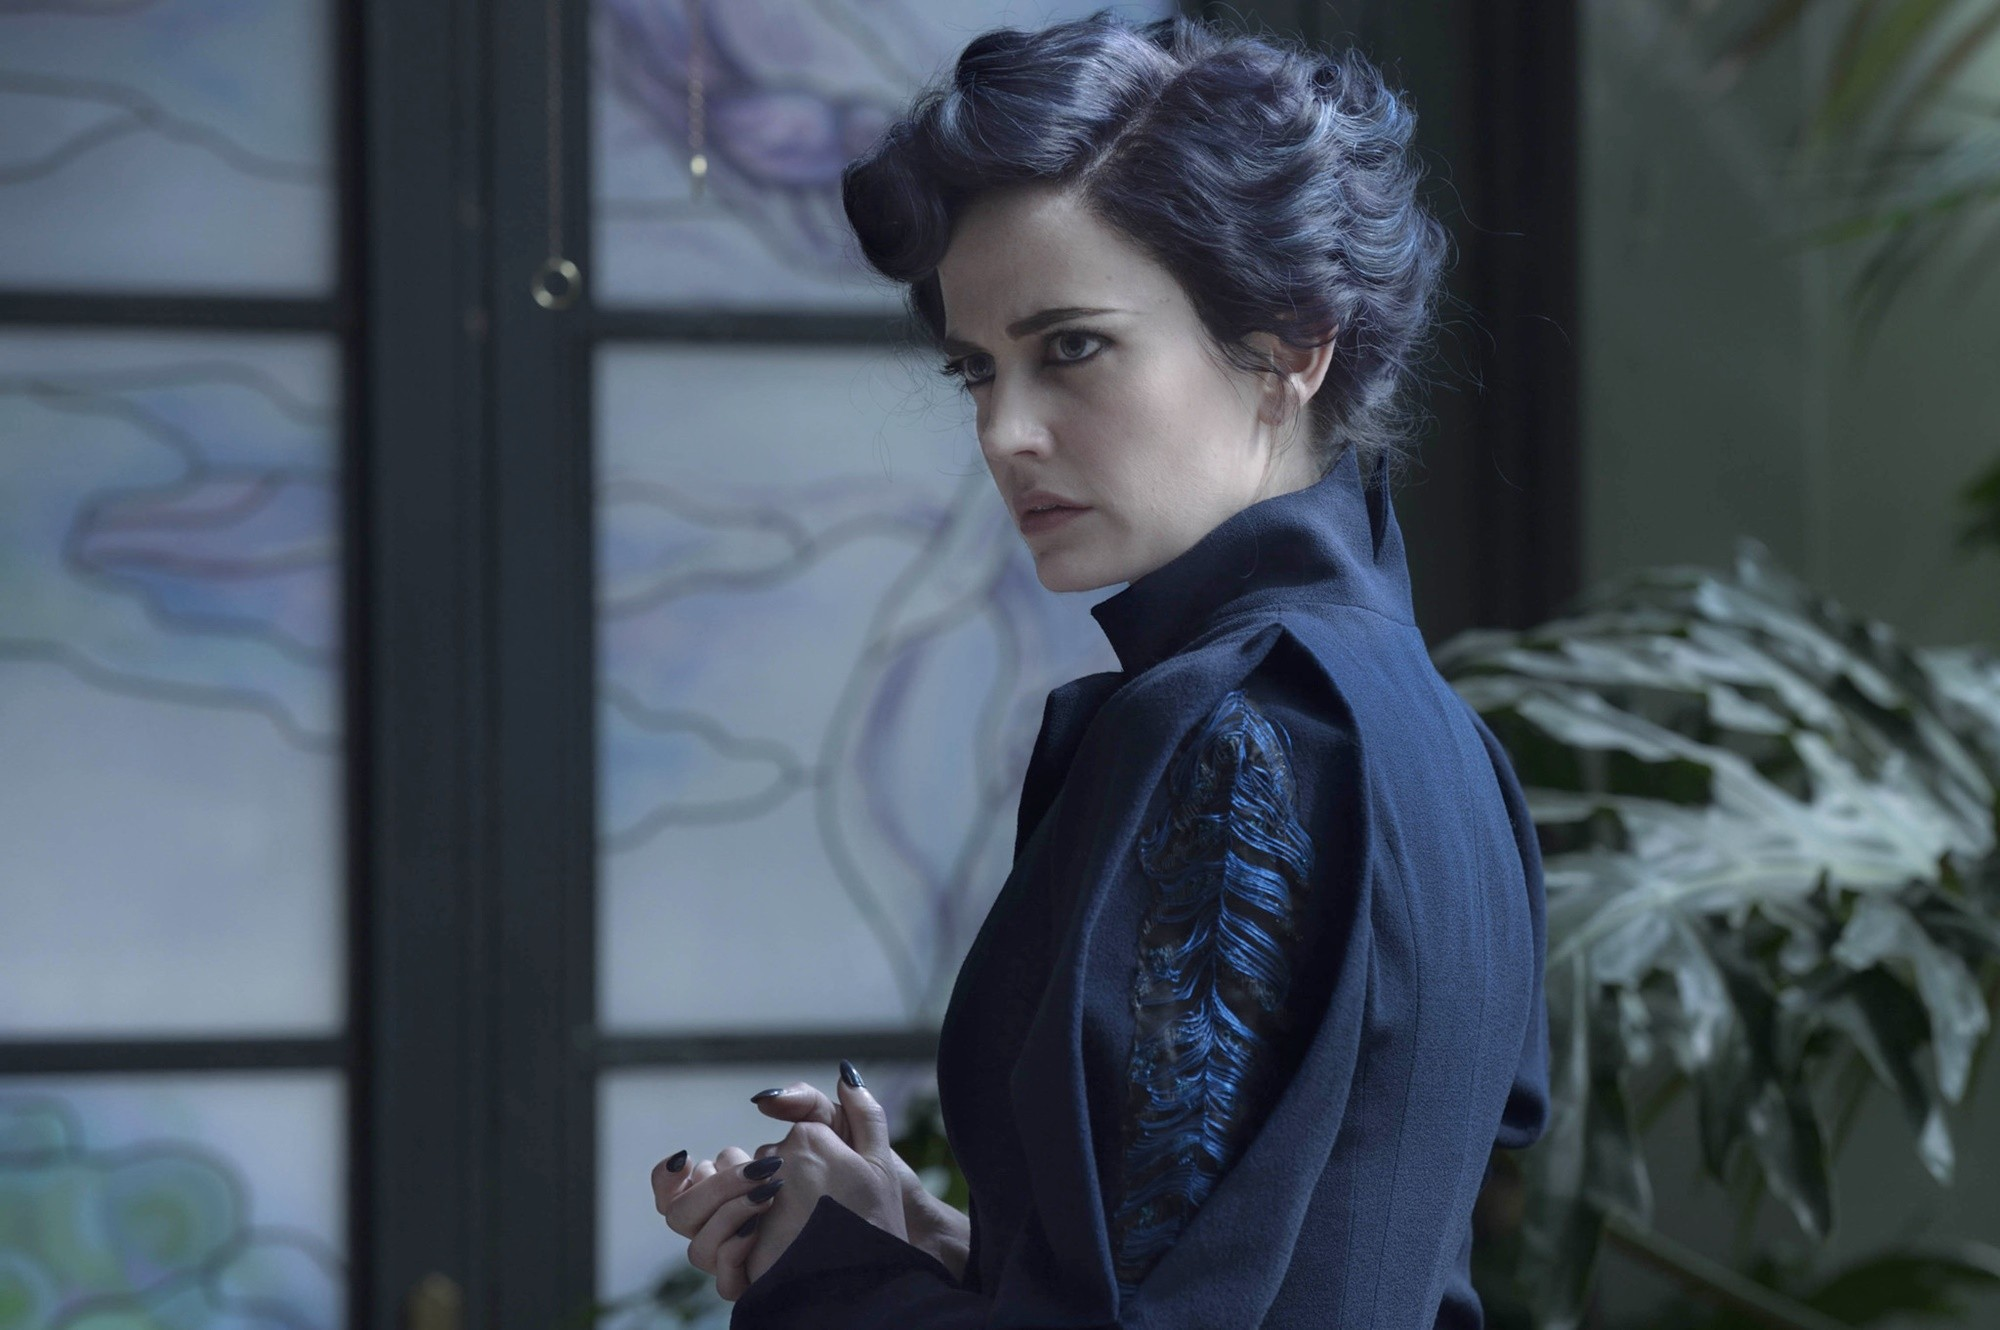 Eva Green as Miss Peregrine in Miss Peregrine's Home for Peculiar Children (2016)